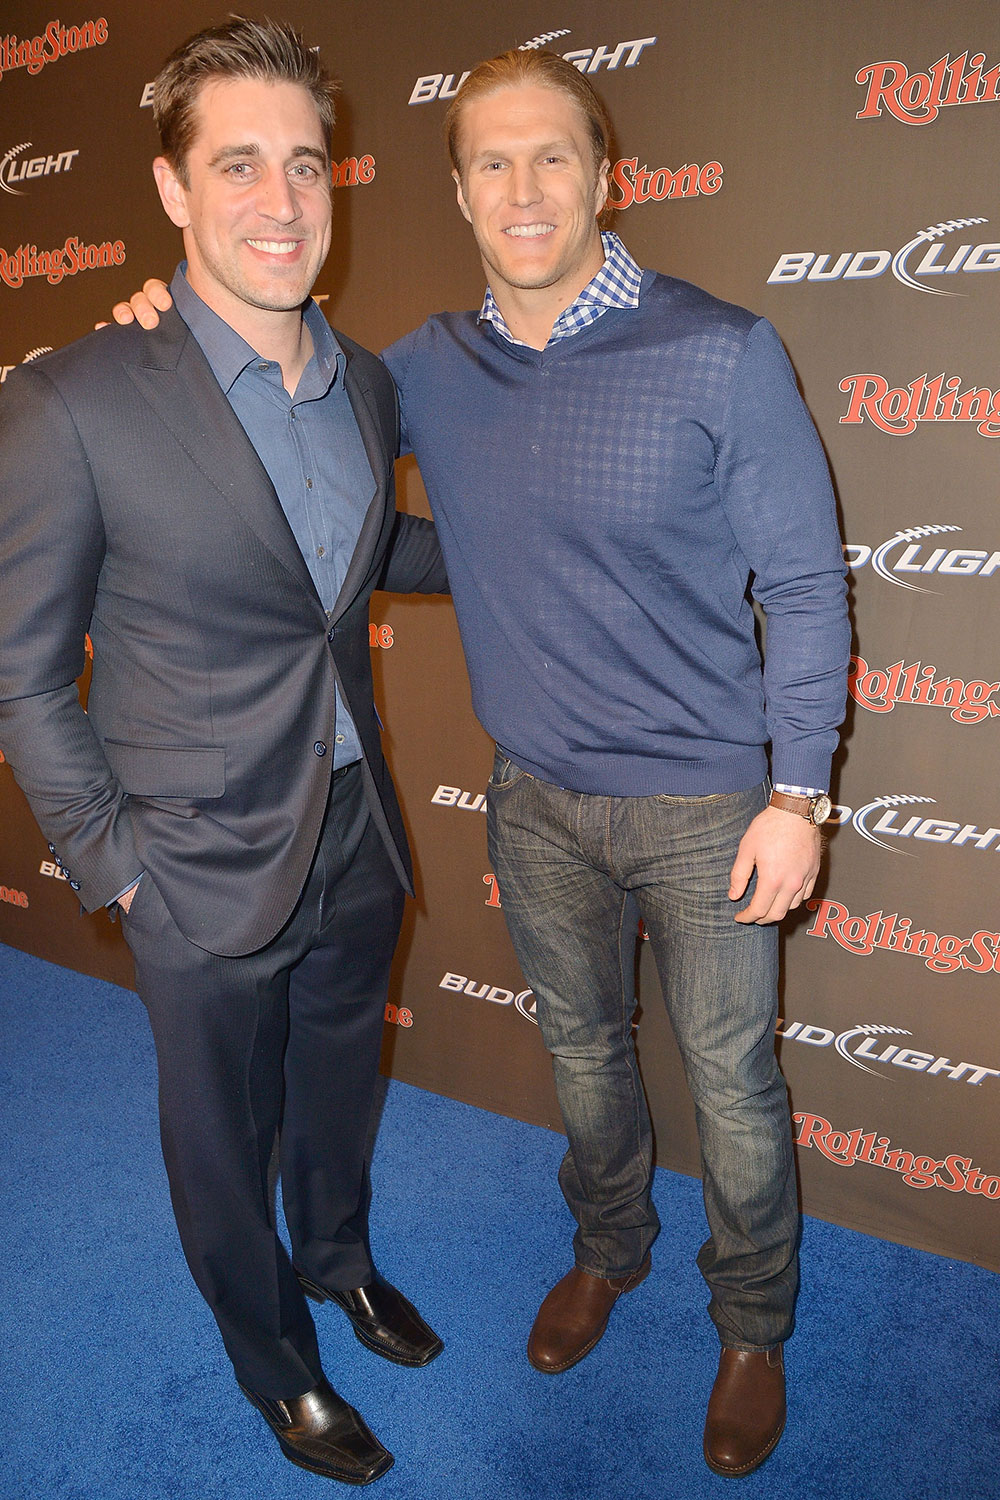 toast-football-player-red-carpet-bud-light-event-10twelve.jpg